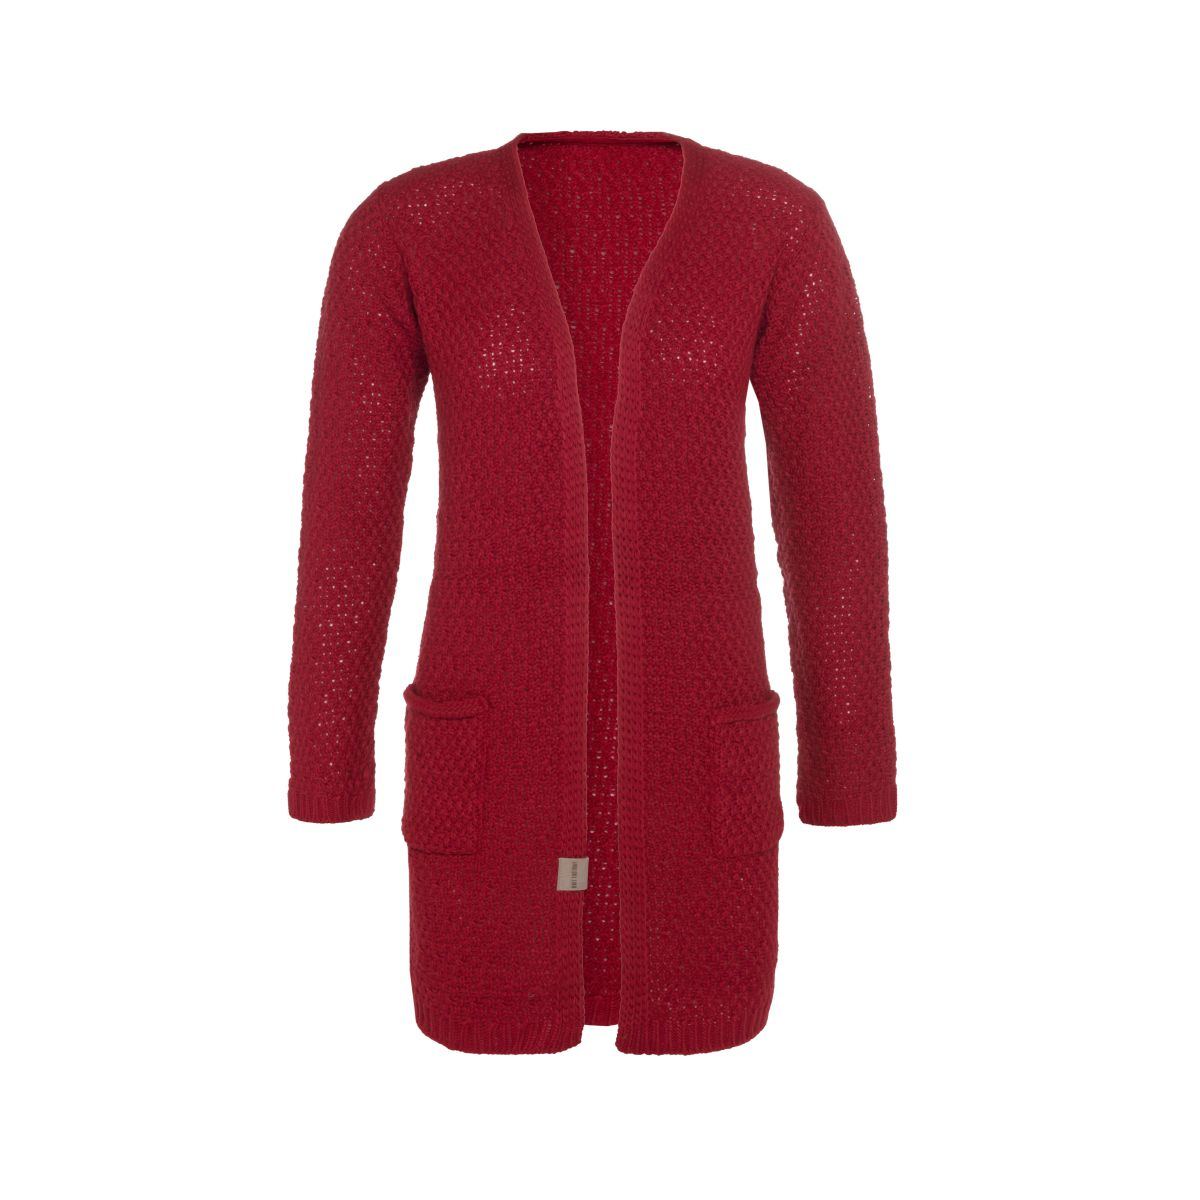 luna knitted cardigan bordeaux 3638 with side pockets